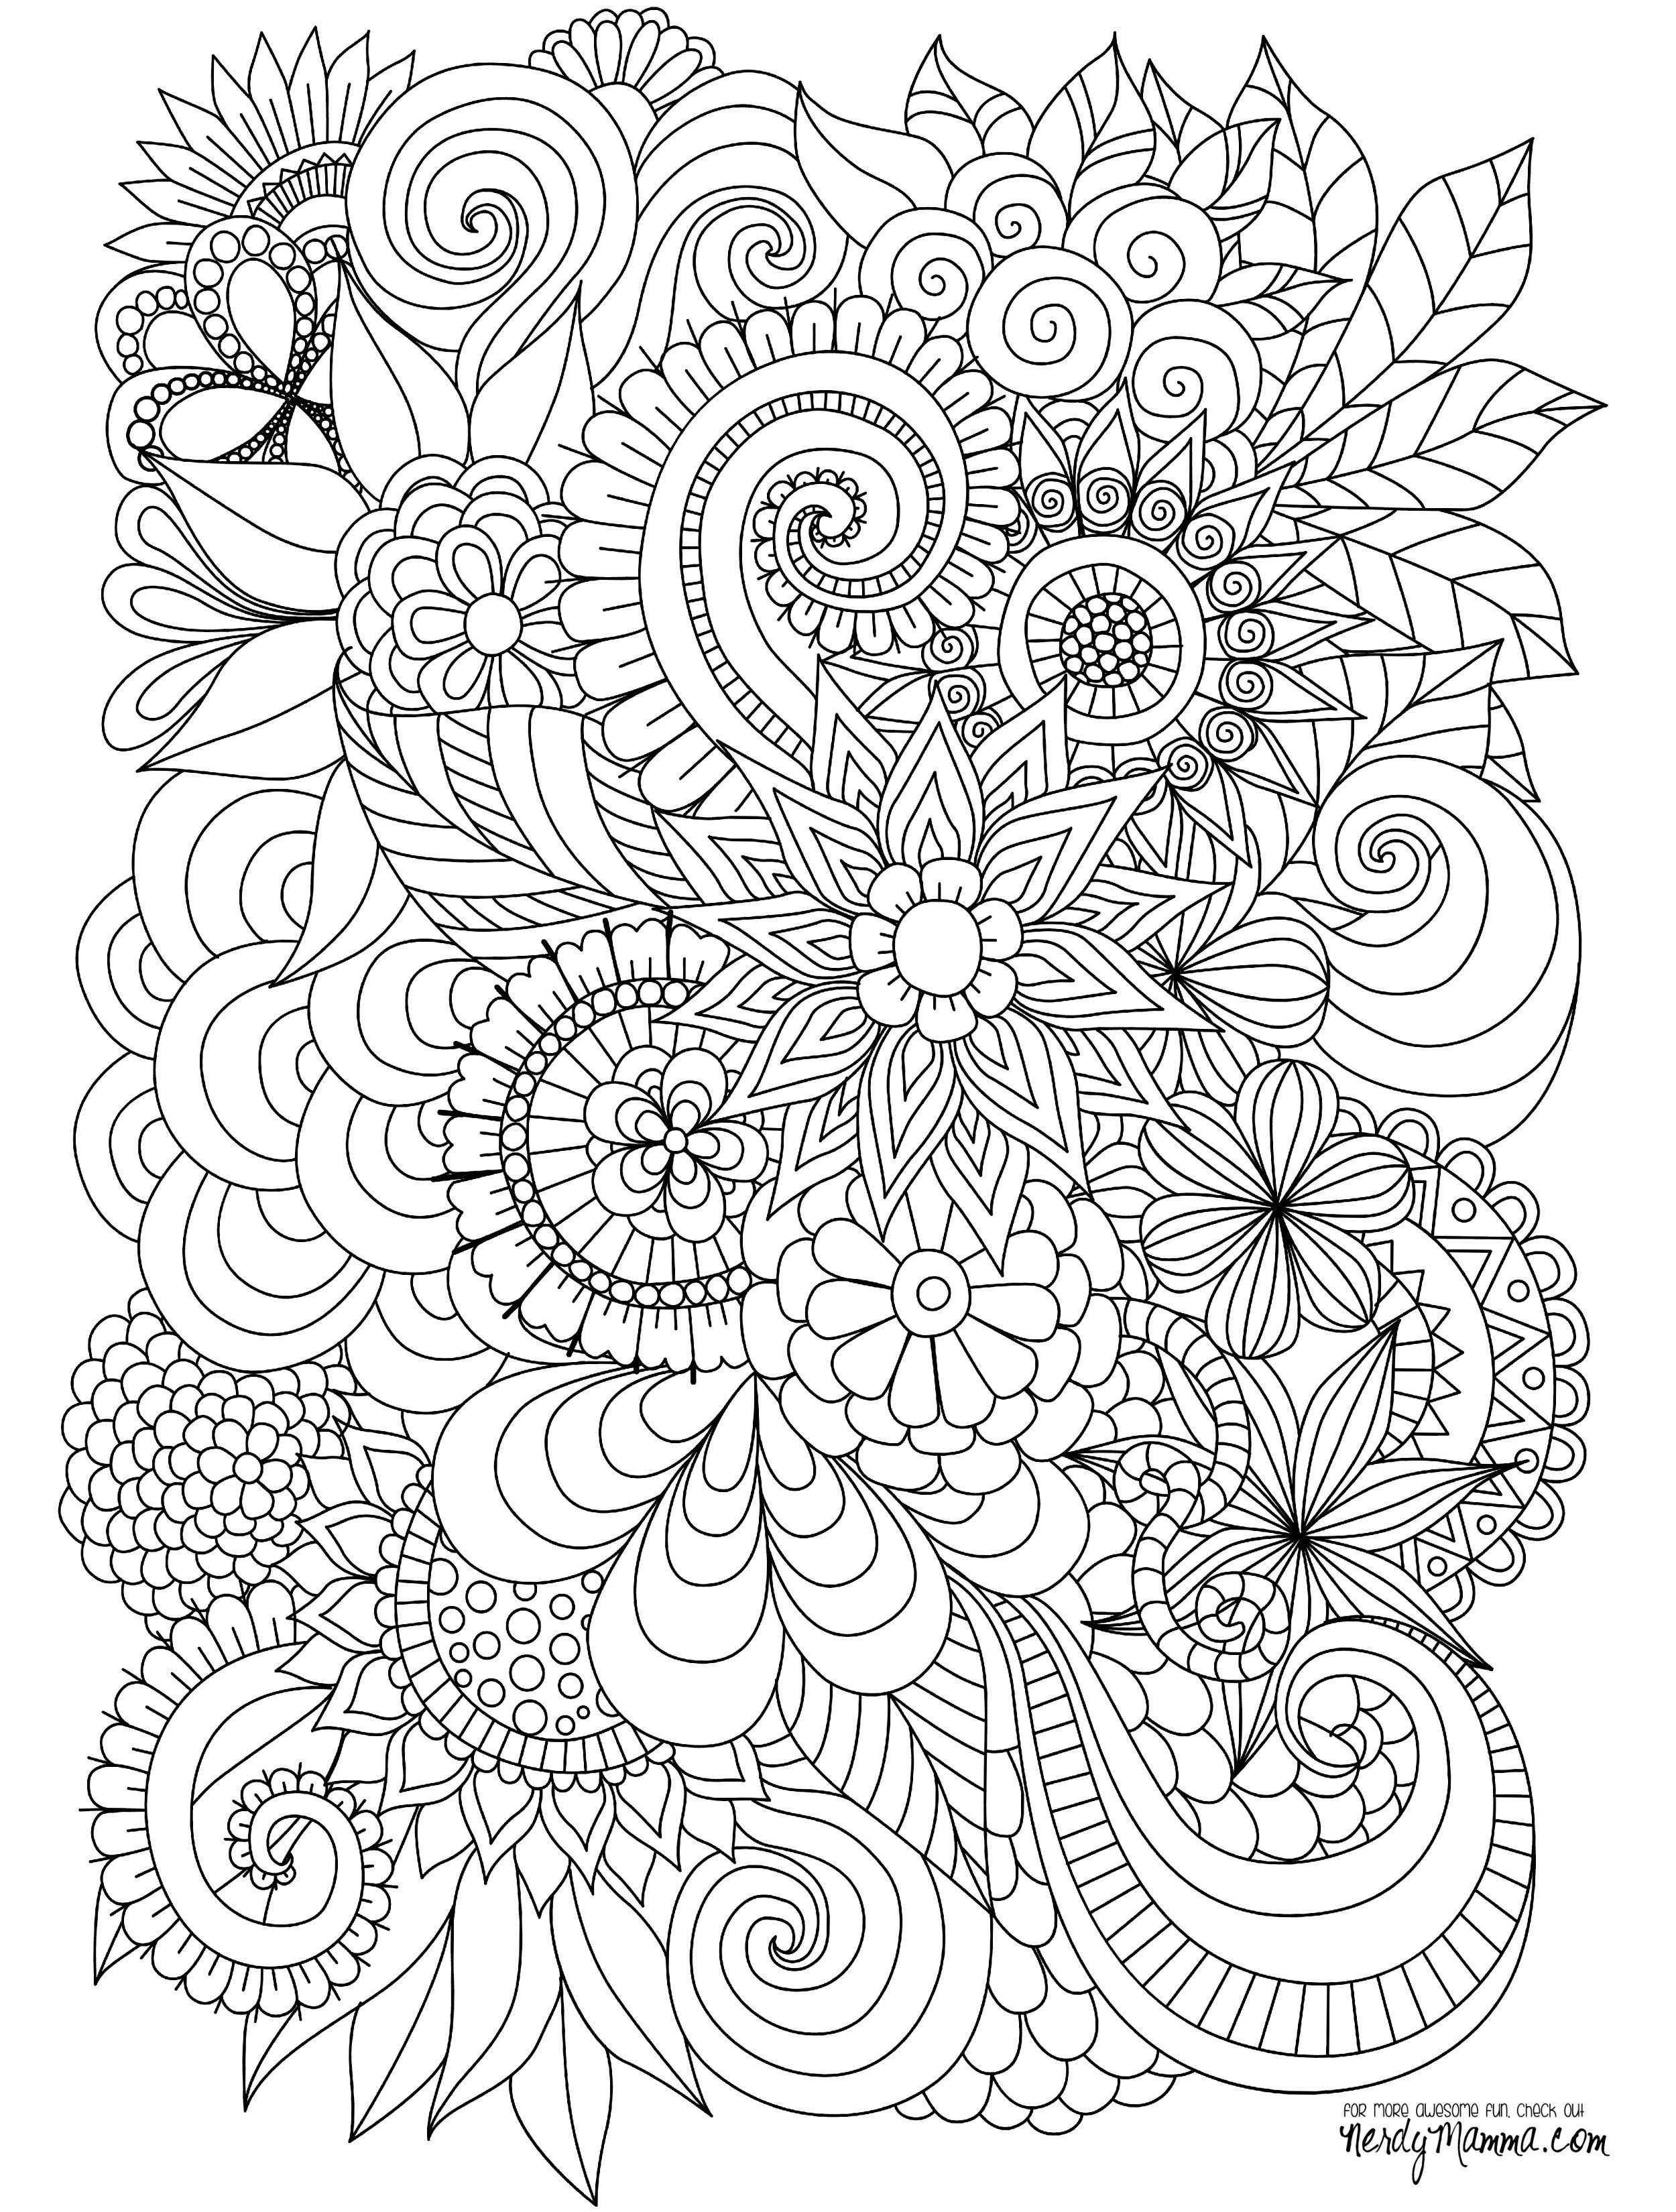 free mandala coloring pages pdf Download-Flowers Abstract Coloring pages colouring adult detailed advanced printable Kleuren voor volwassenen coloriage pour adulte anti stress kleurplaat voor 15-i